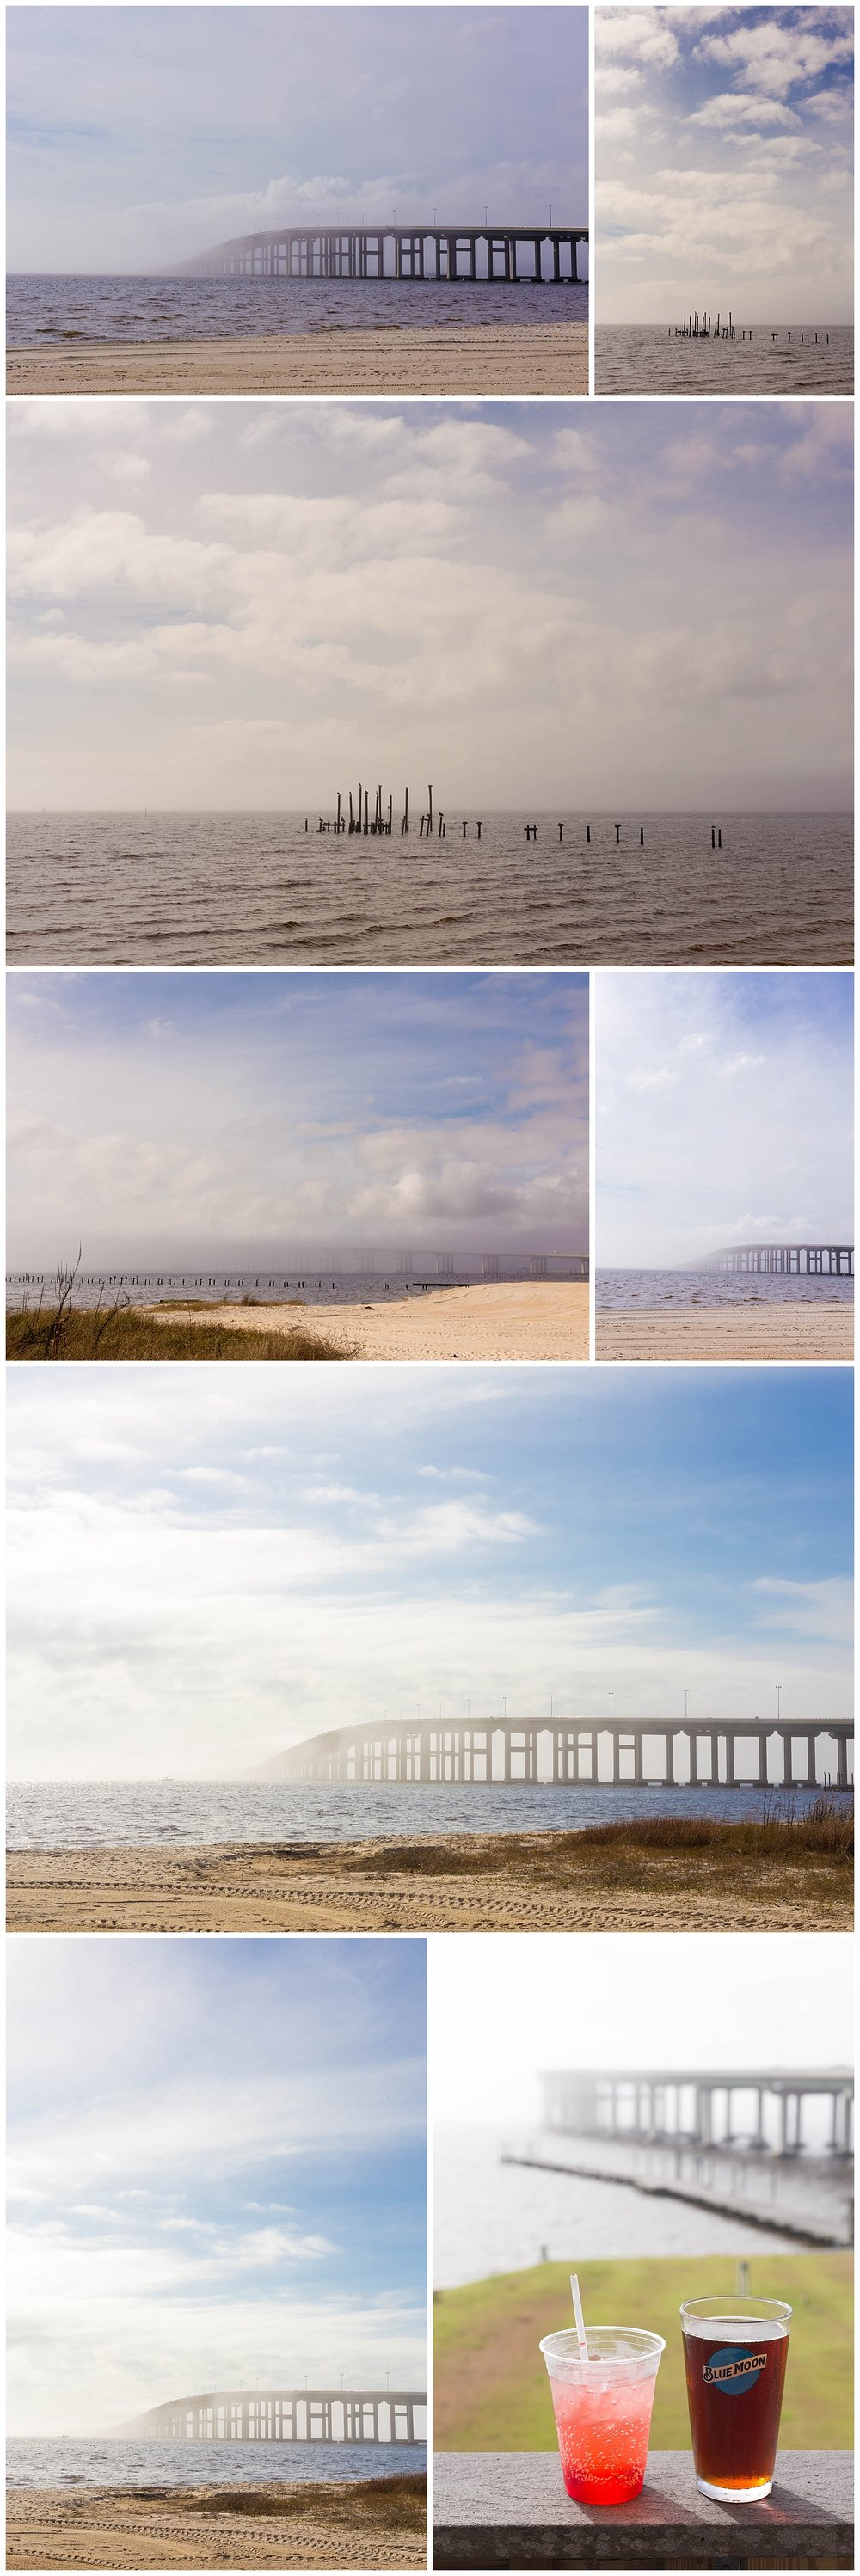 foggy day on Ocean Springs Front Beach with bridge and drinks at yacht club (OSYC)